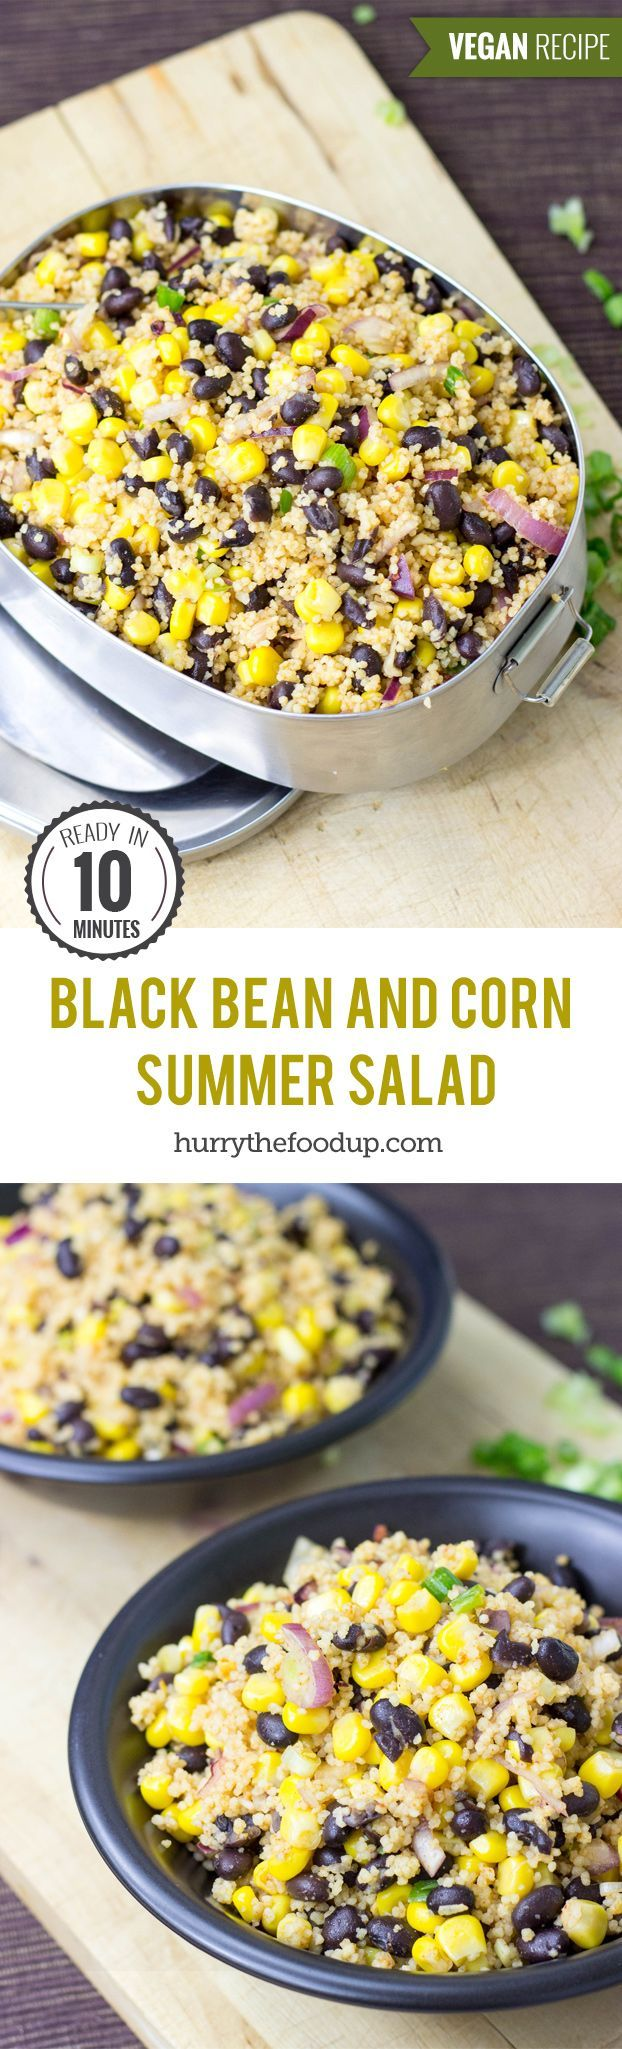 High Protein Black Bean and Corn Summer Salad #vegan #beansalad | http://hurrythefoodup.com